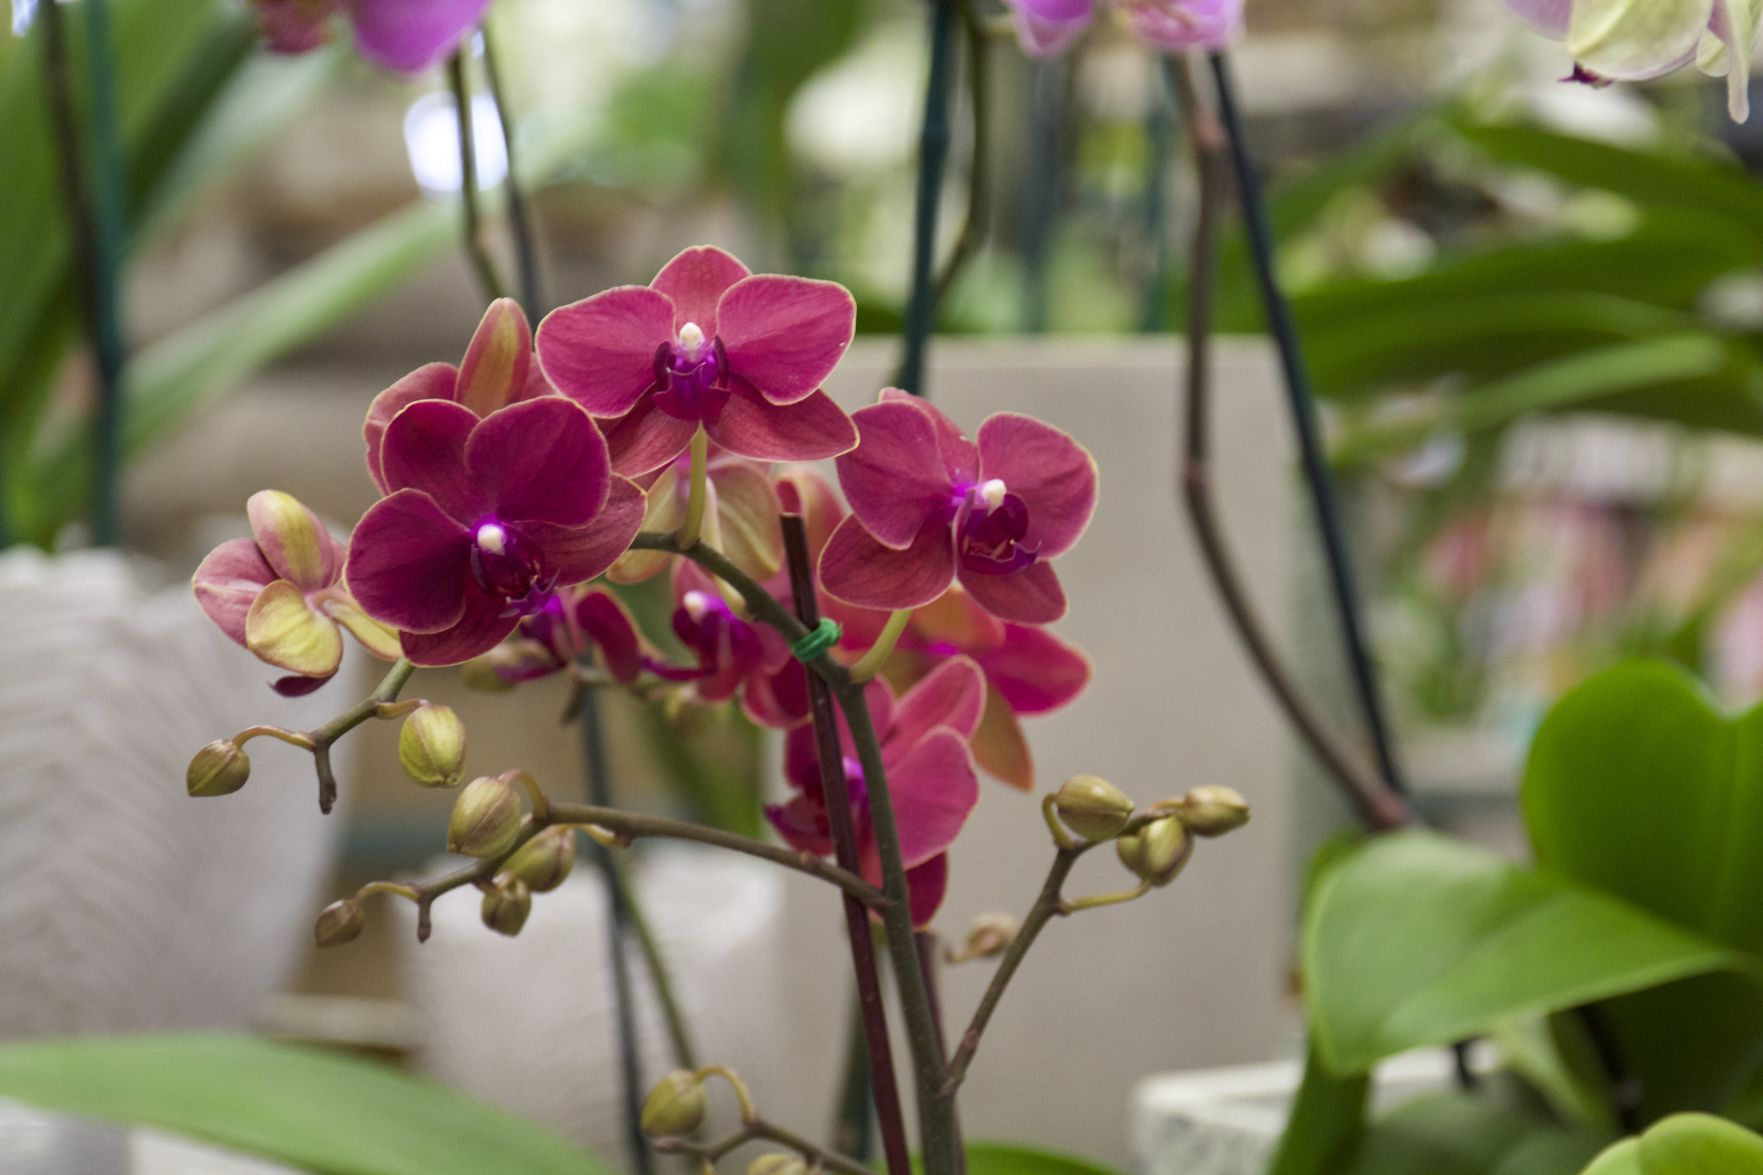 According to co-owner Phillip Gentry, orchids are low maintenance flowers